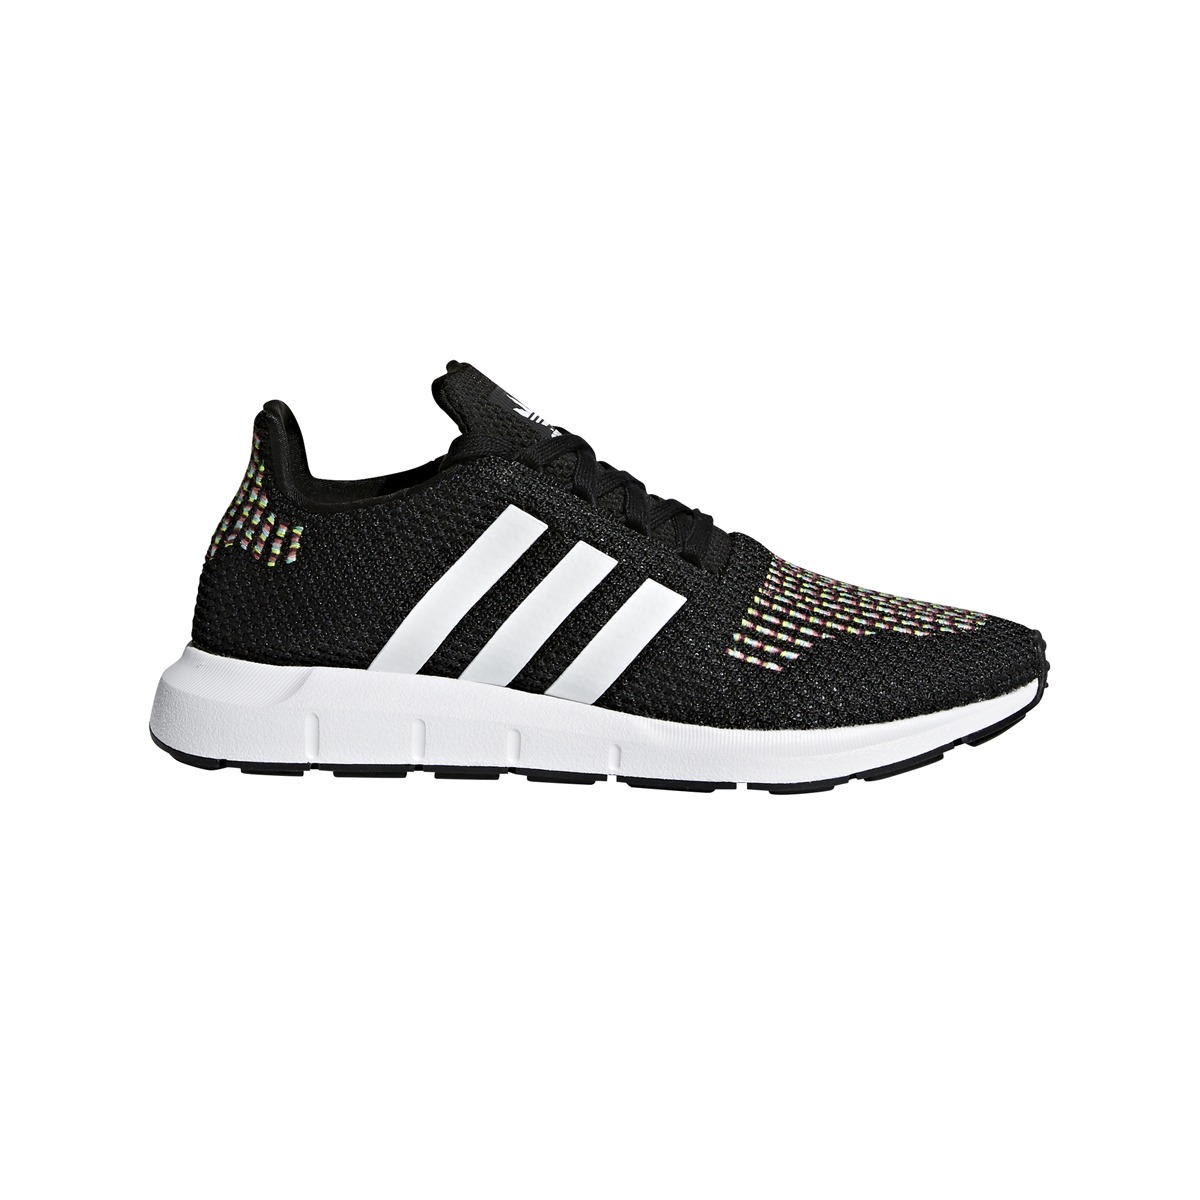 3 Originals Zapatillas Ng W Adidas Run 299 Swift 00 Moda Mujer 4xqATxf